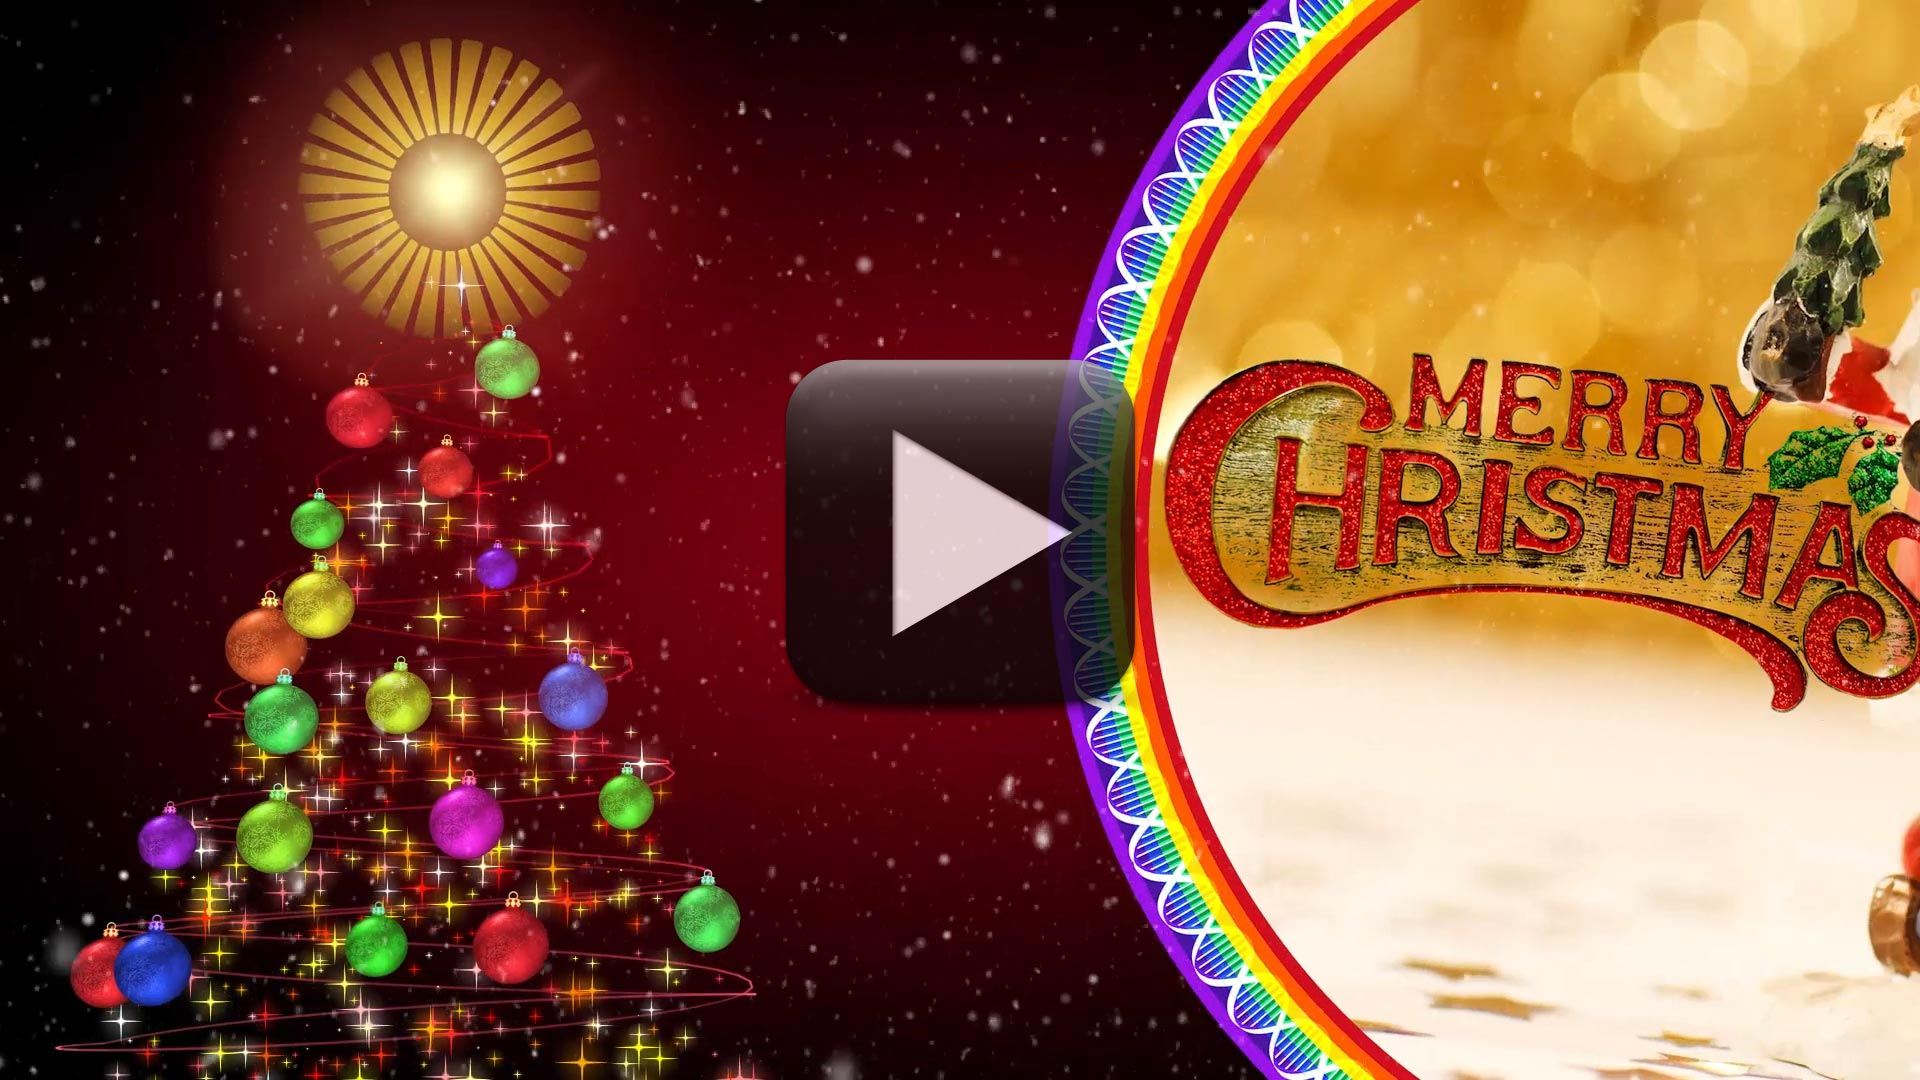 merry christmas greetings video free download | all design creative